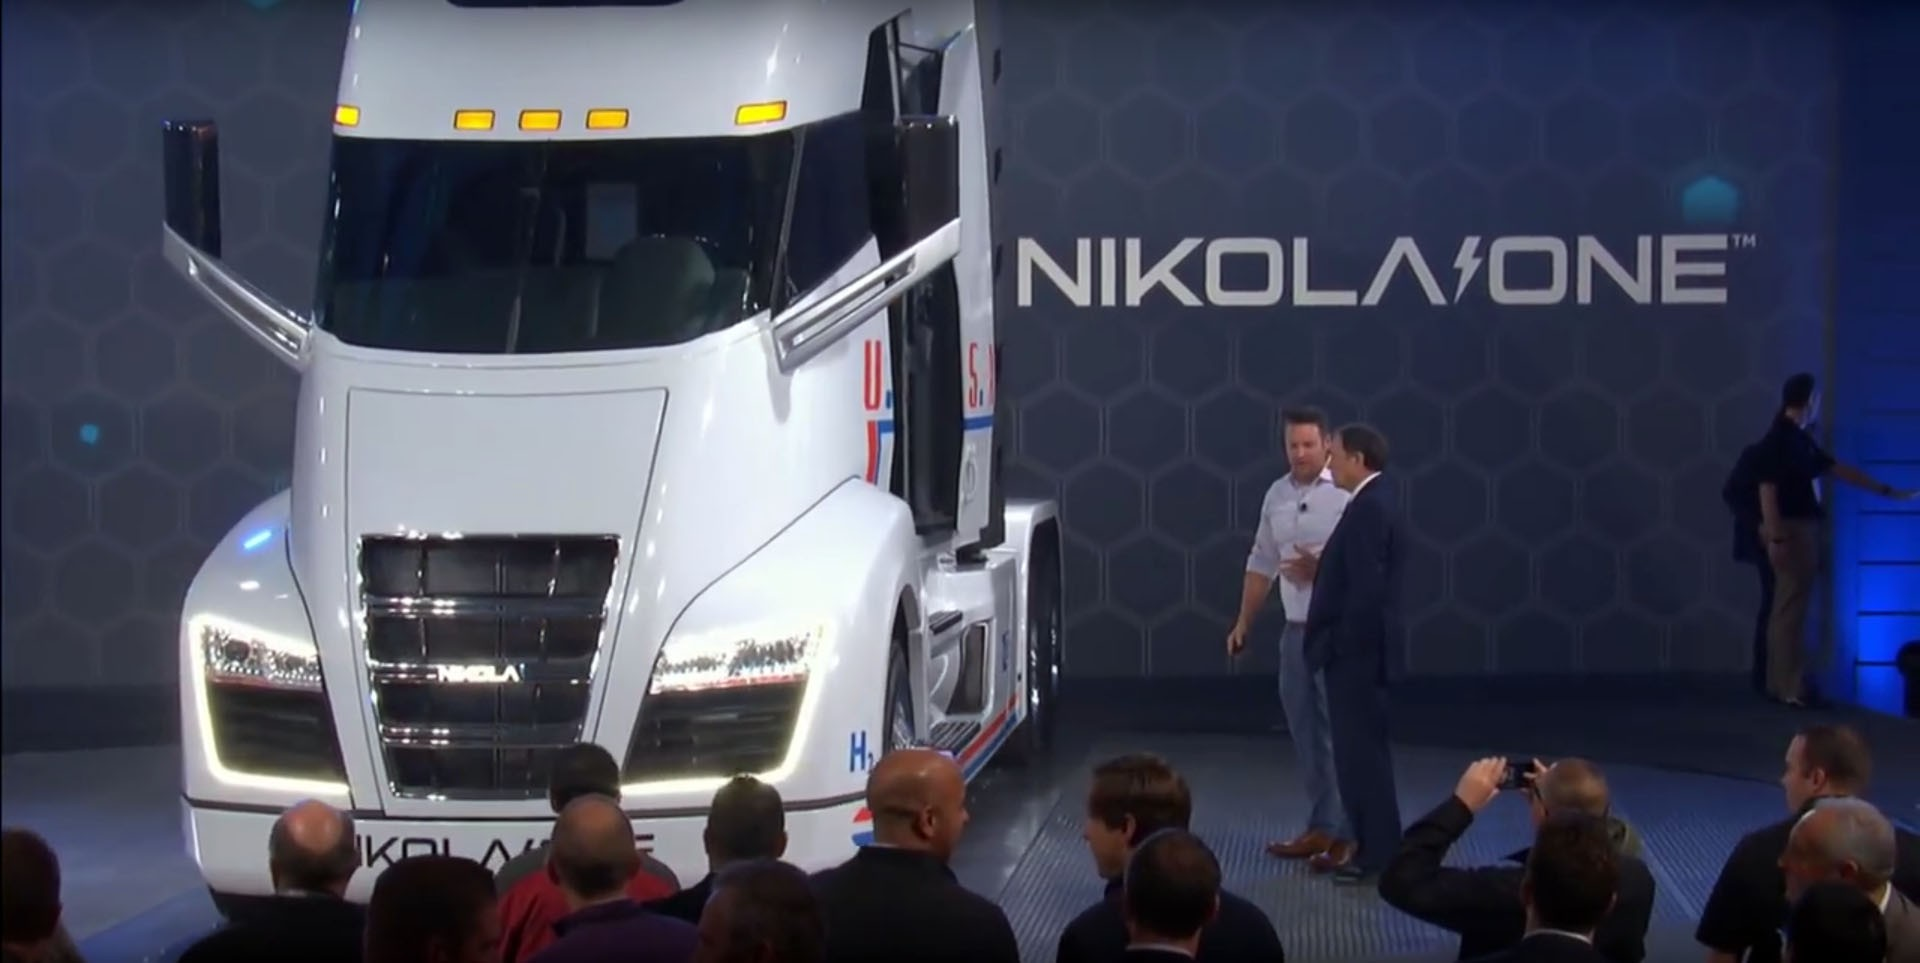 Tesla hit with $2B lawsuit alleging violation of semi truck patents